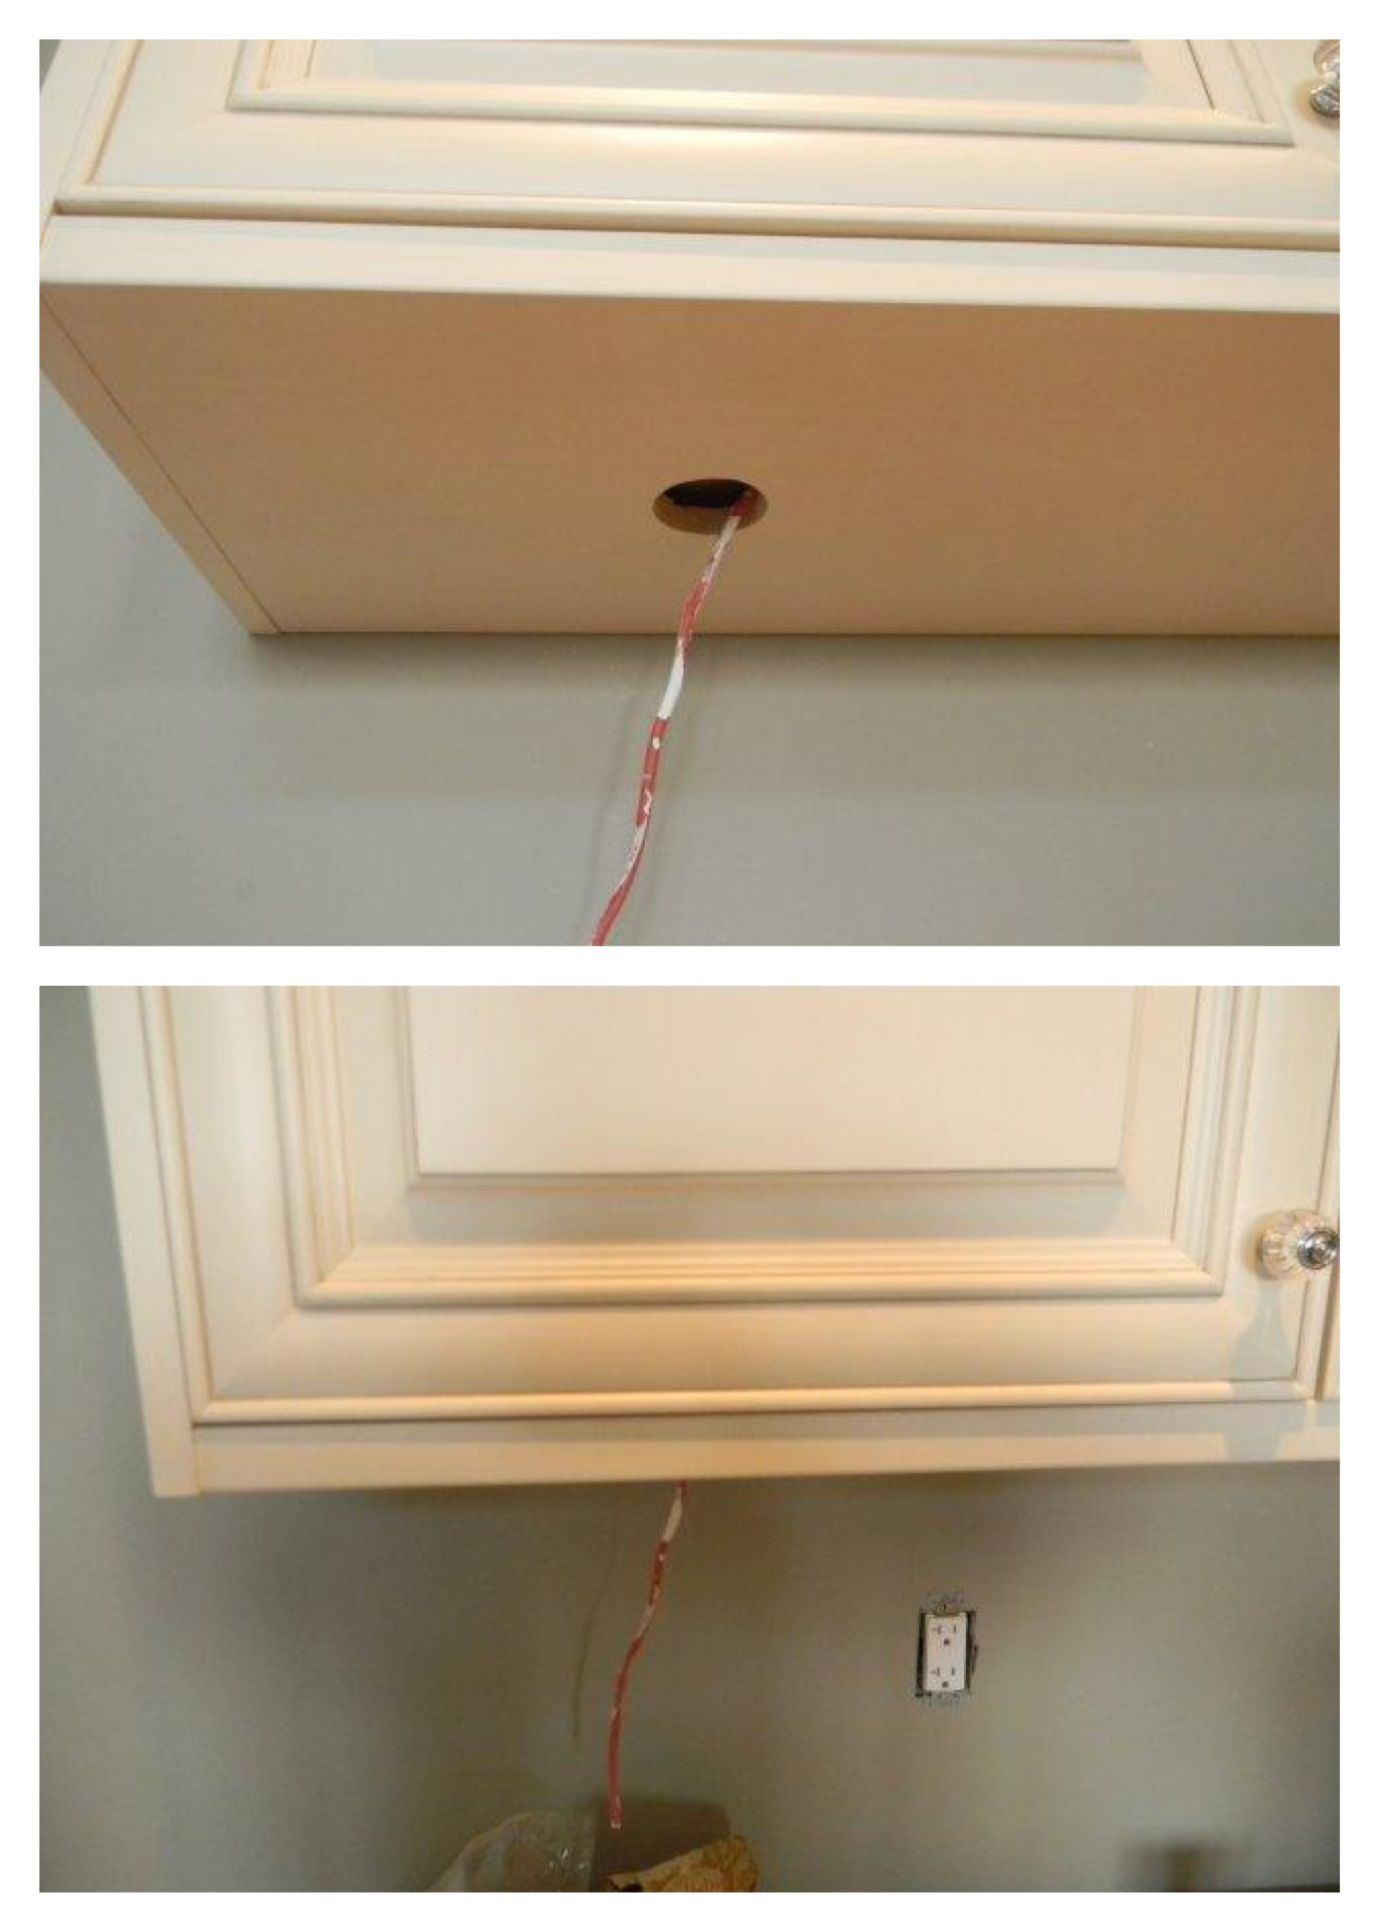 This Is How You Do A False Bottom For Under Cabinet Lighting In A Kitchen Nancy Esmon Cabinets Under Cabinet Lighting Superior Cabinets Kitchen Caninets